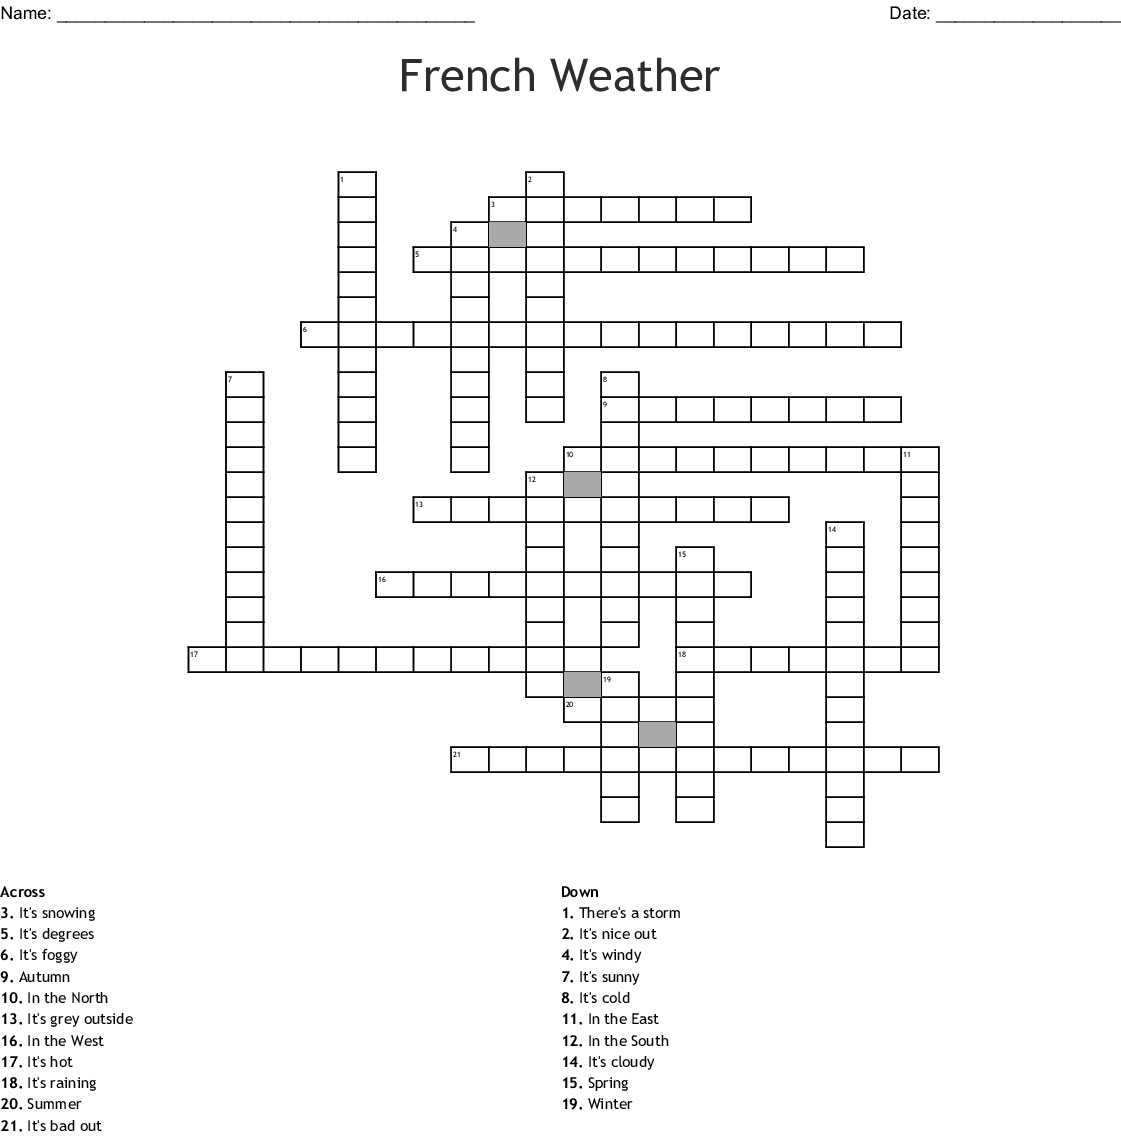 French Weather Crossword